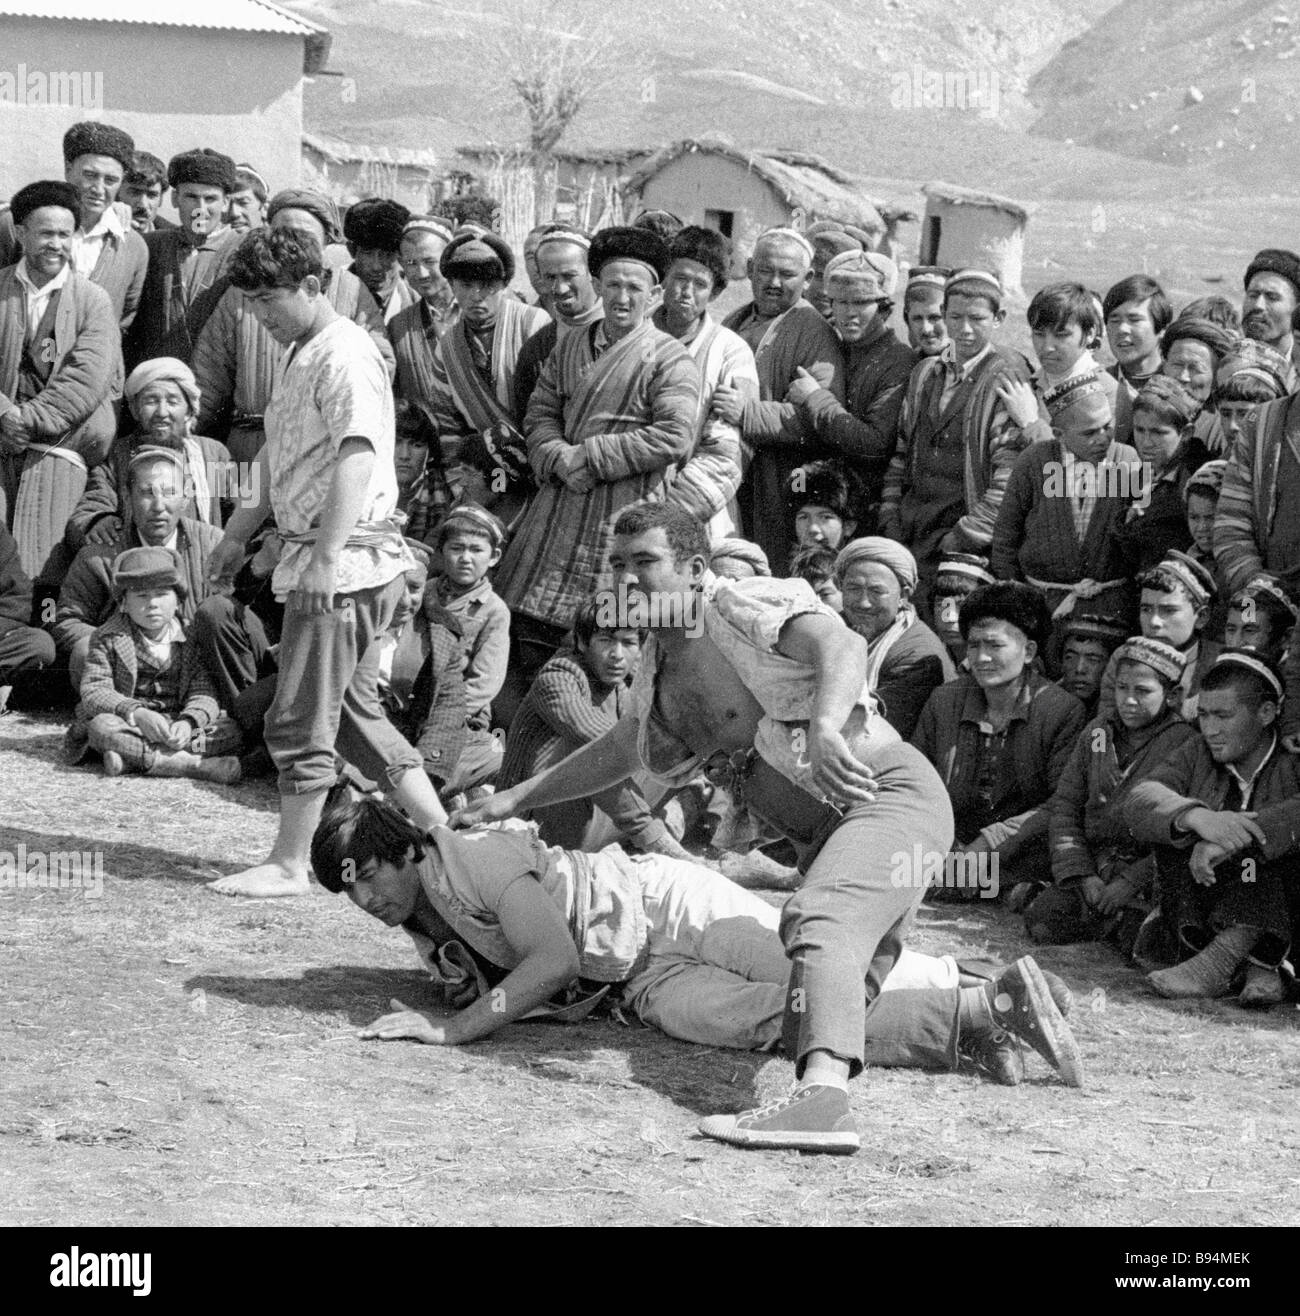 [Image: a-bout-of-the-gushtingiri-tajik-folk-wre...B94MEK.jpg]